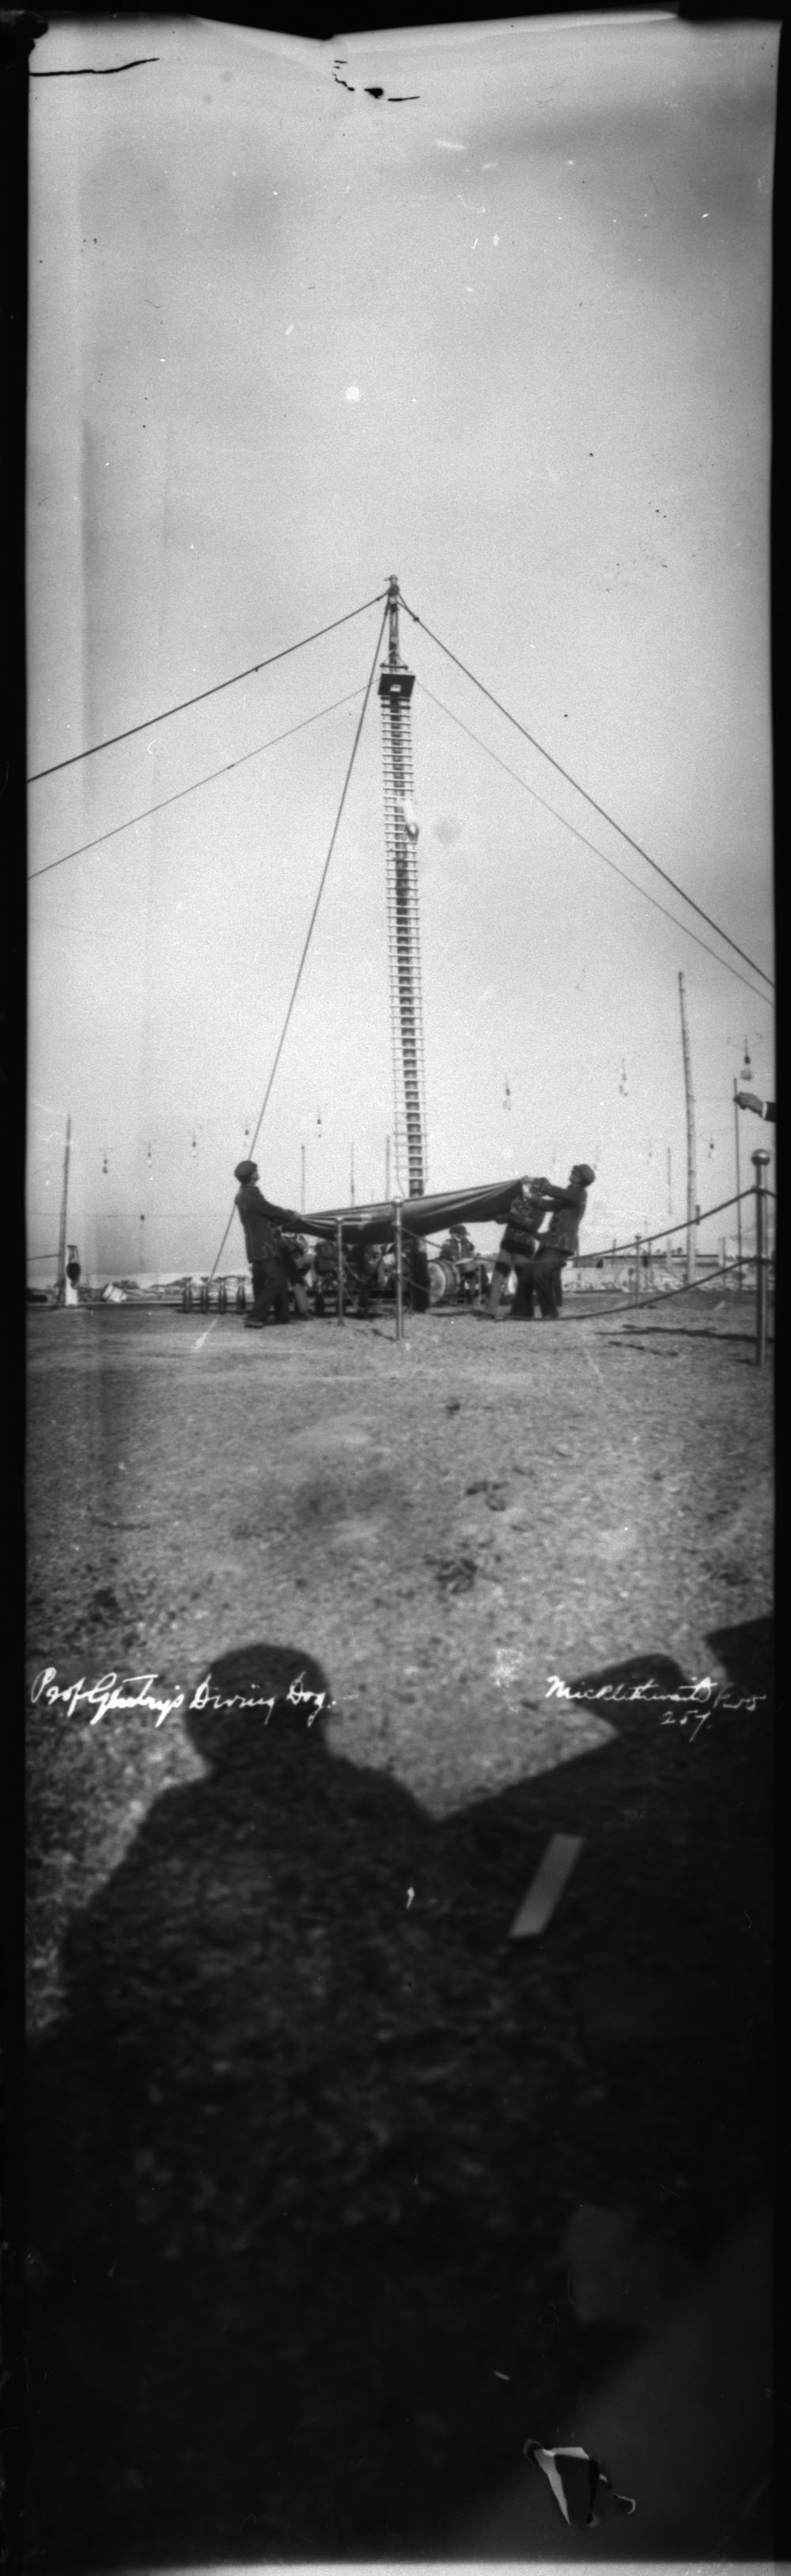 A black-and-white photograph of a circus dog jumping from a platform on a tall pole. Four men below hold a large blanket to catch the falling dog.